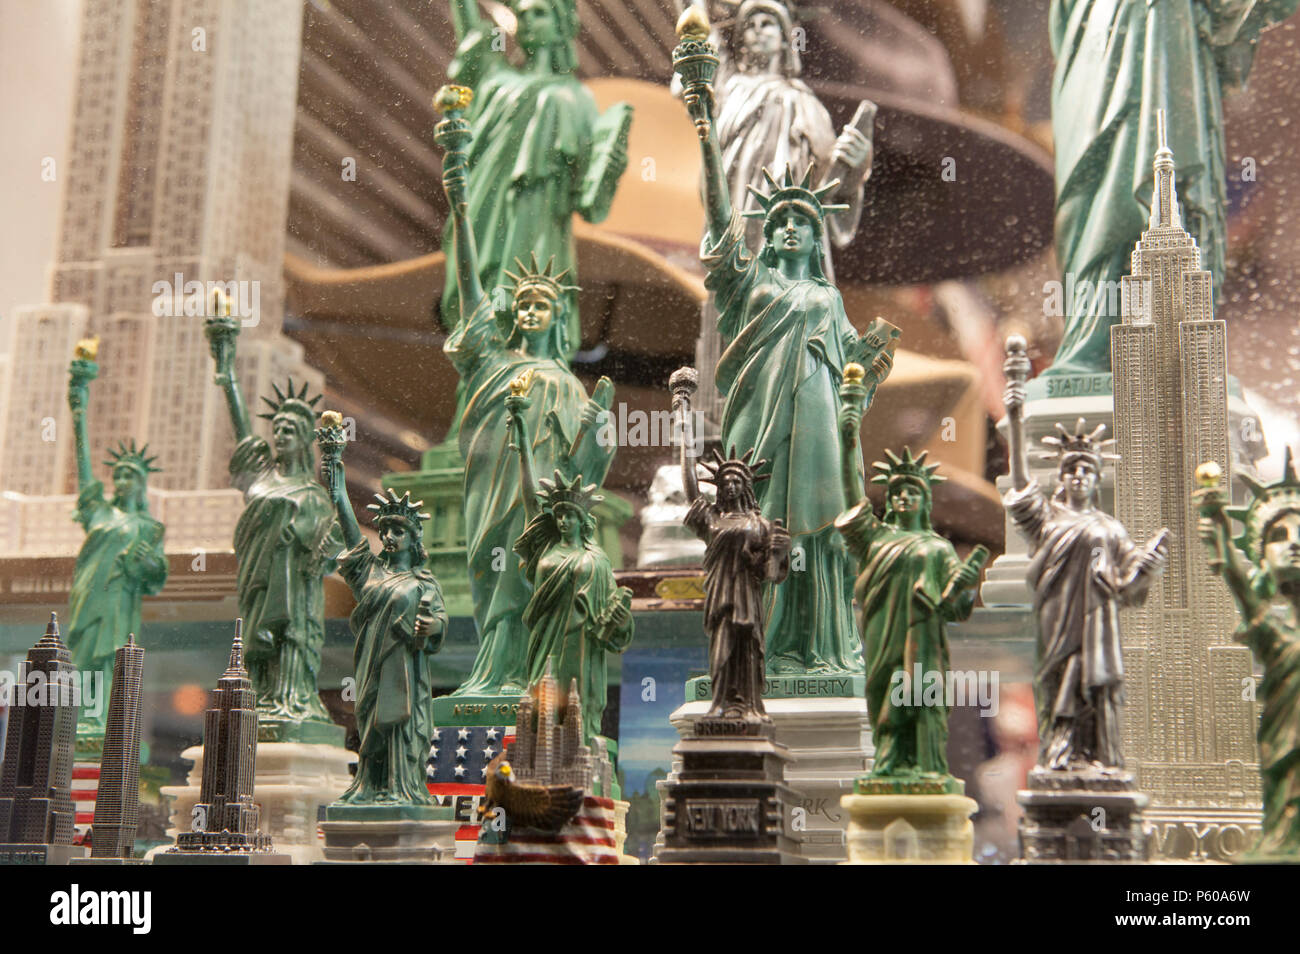 Cheap models of The Statue of Liberty on sale for tourists in a shop window in Manhattan, New York City - Stock Image